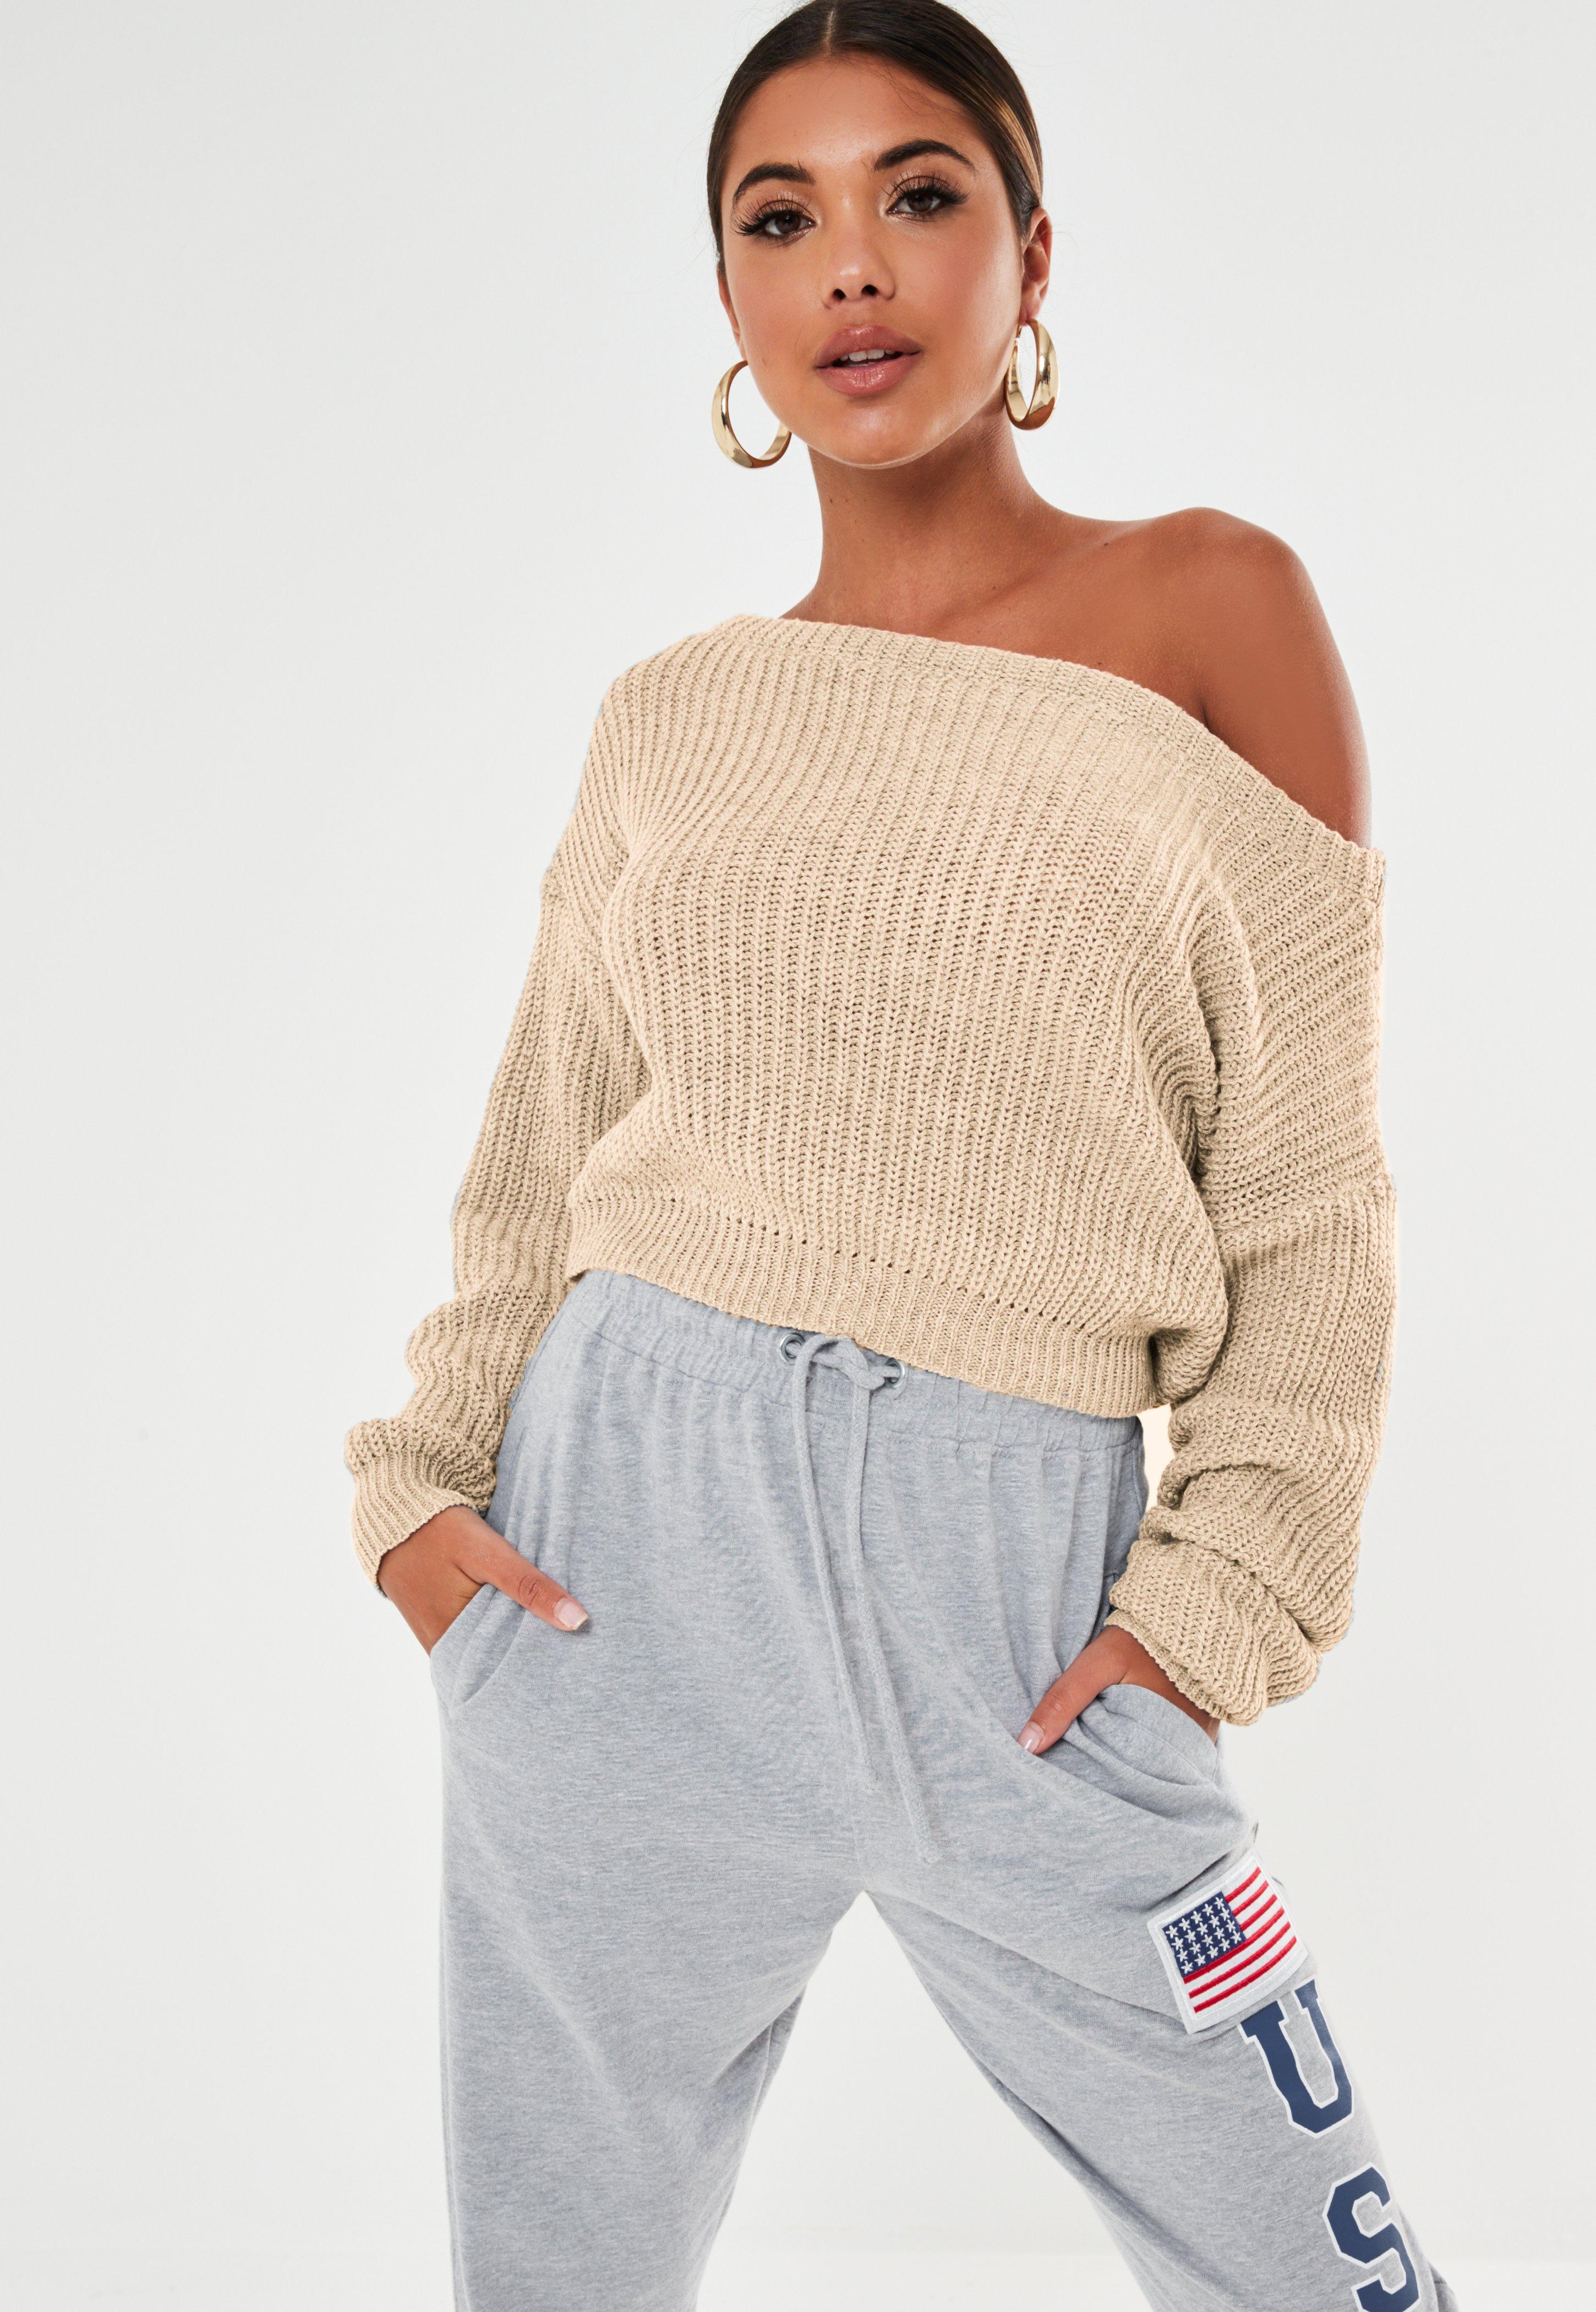 b9caa2602ac3df Cropped Sweaters | Knitted Crop Tops - Missguided